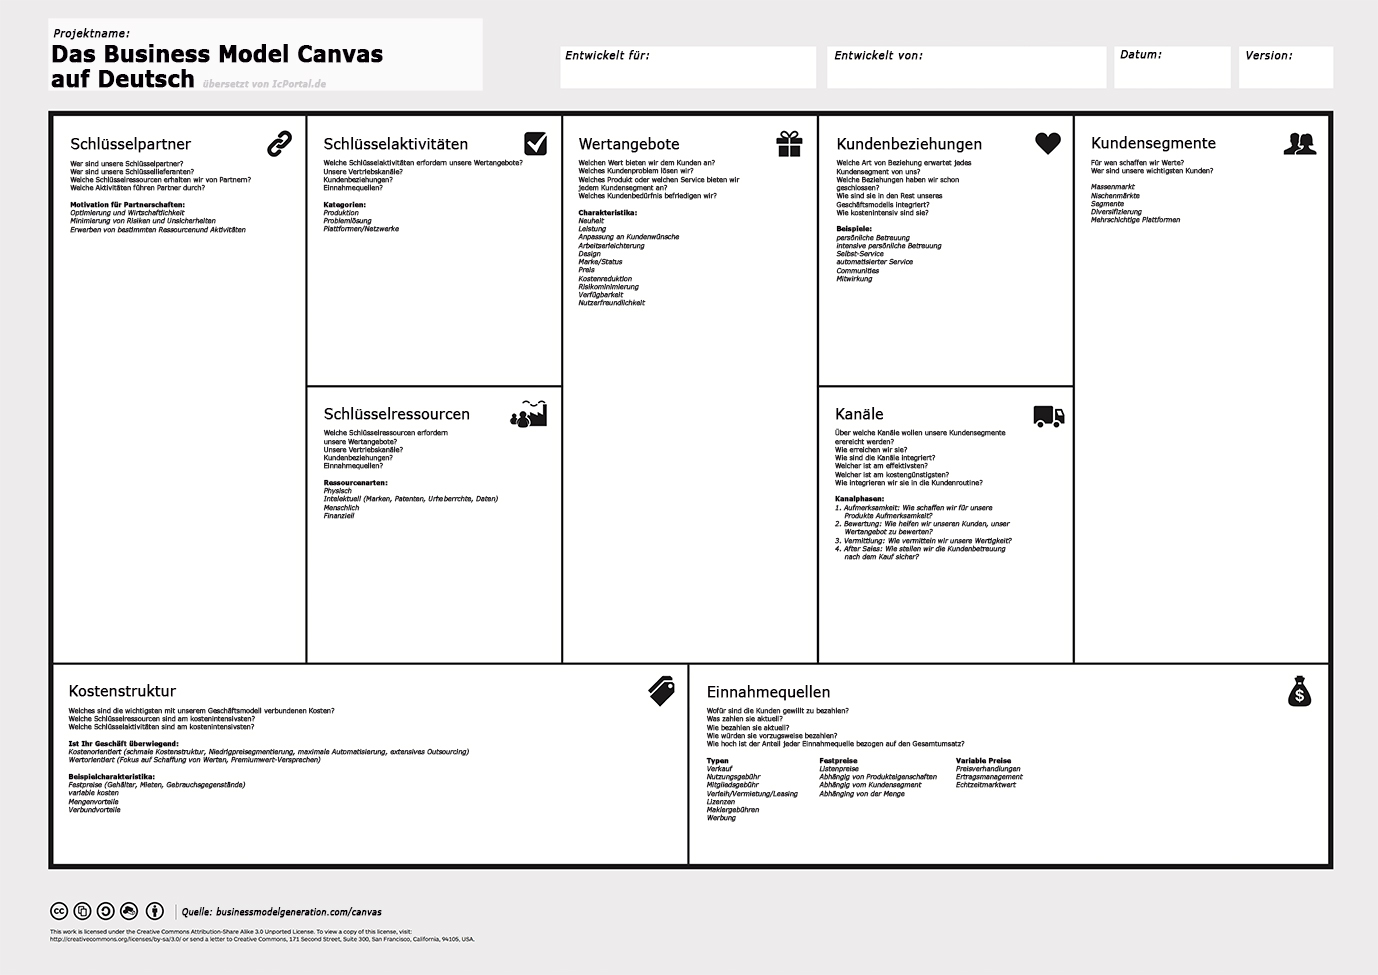 Business Model Canvas - Vorlage für Geschäftsmodellinnovation - TOM SPIKE